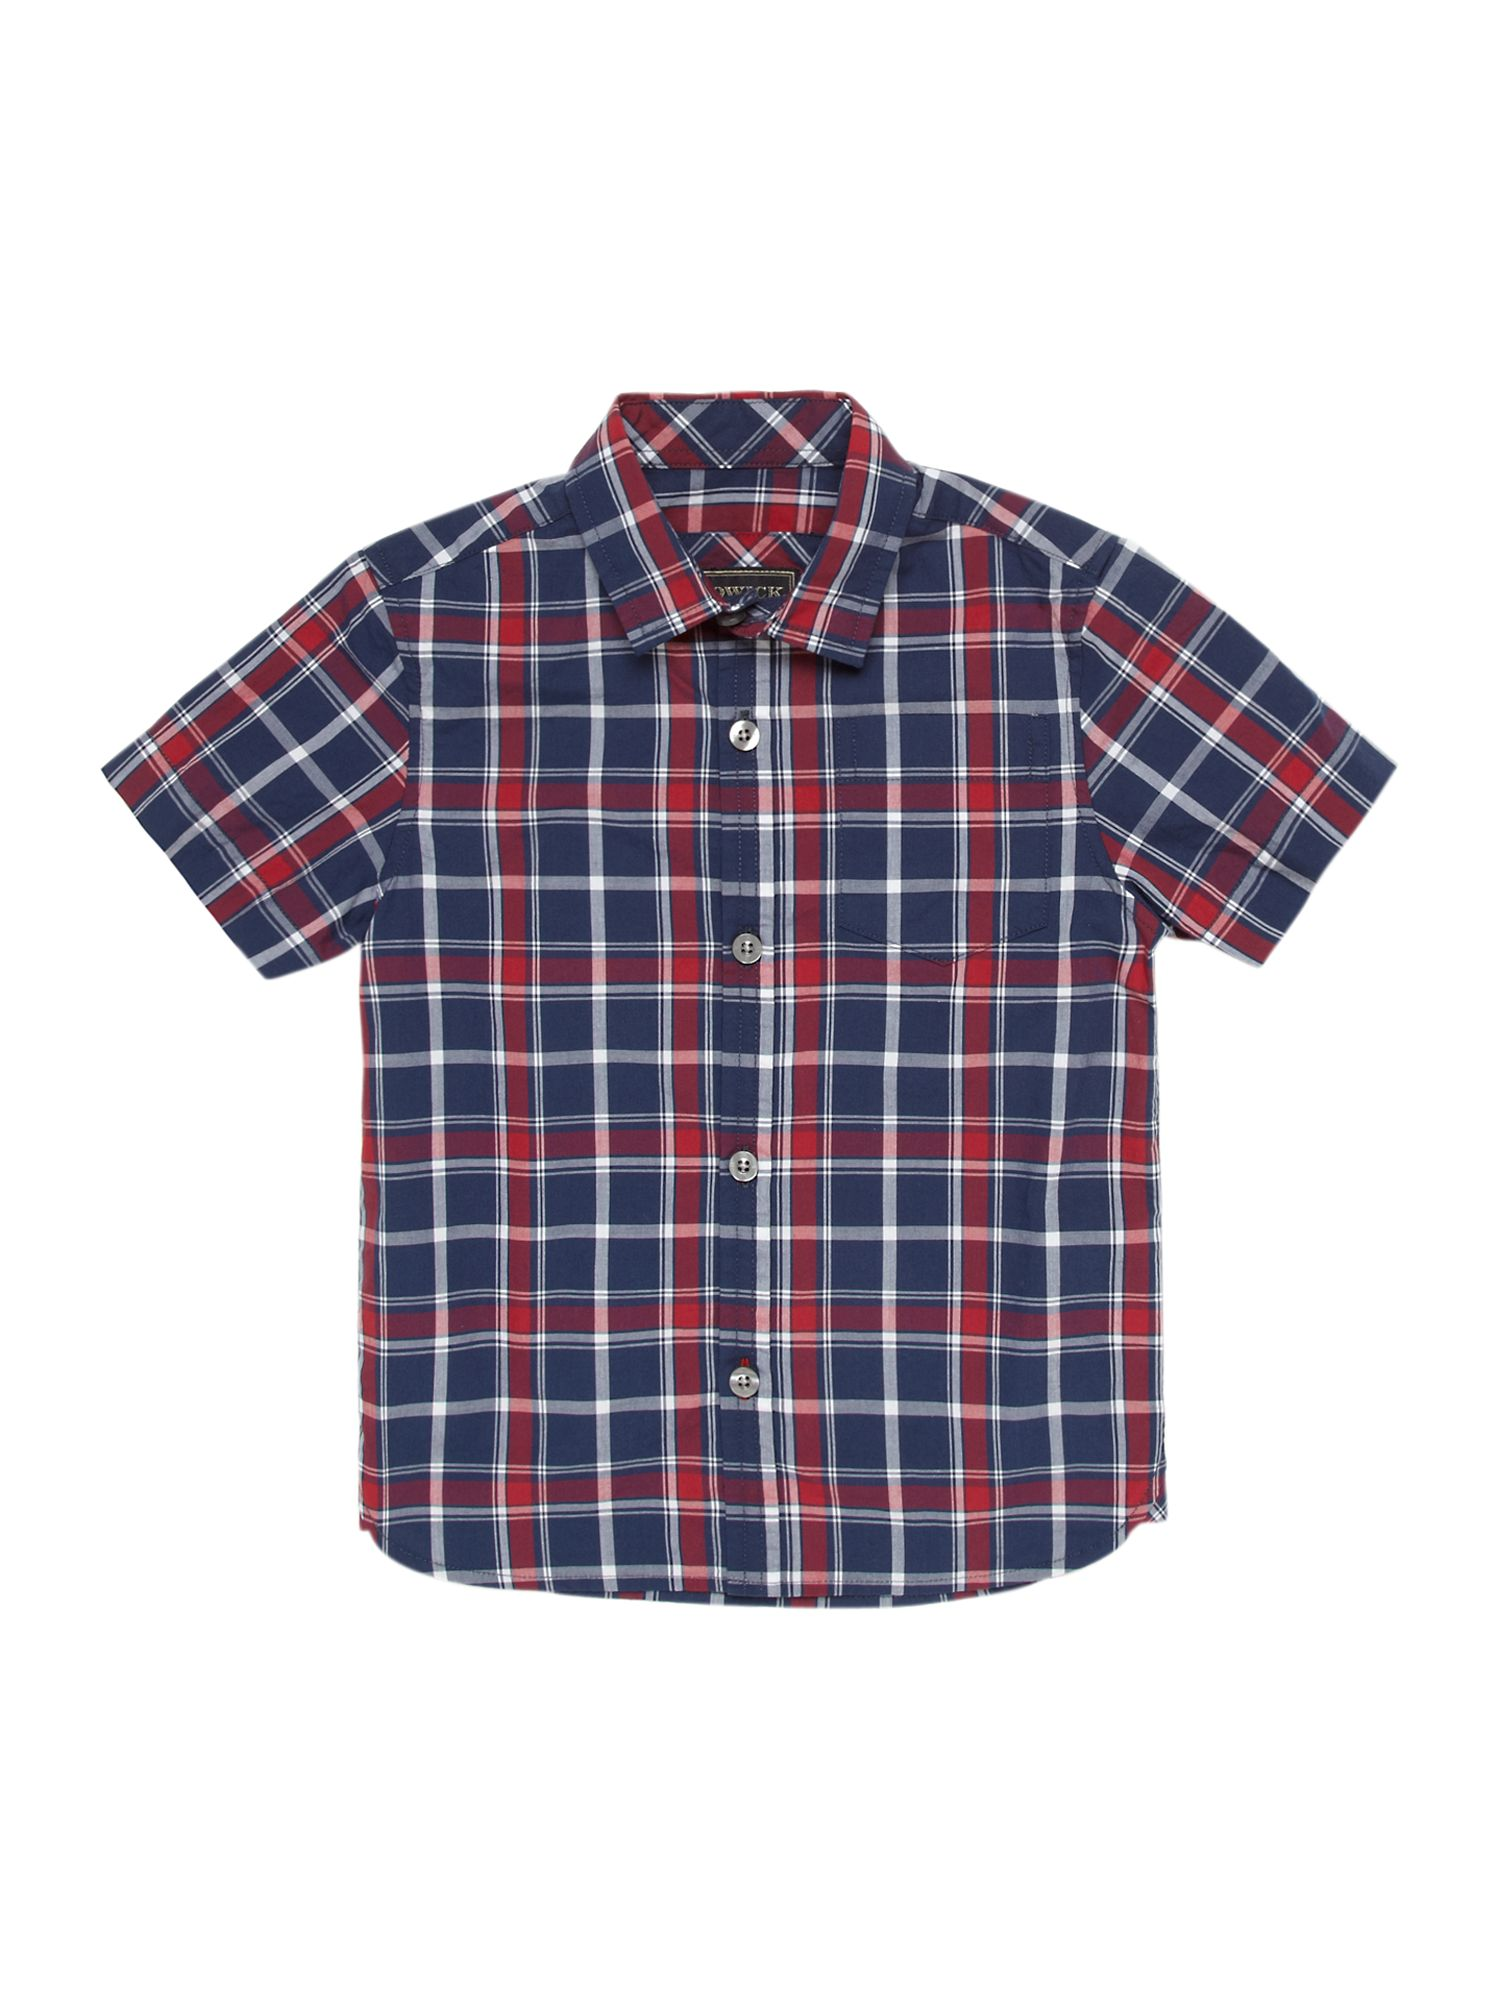 Boys large check shirt